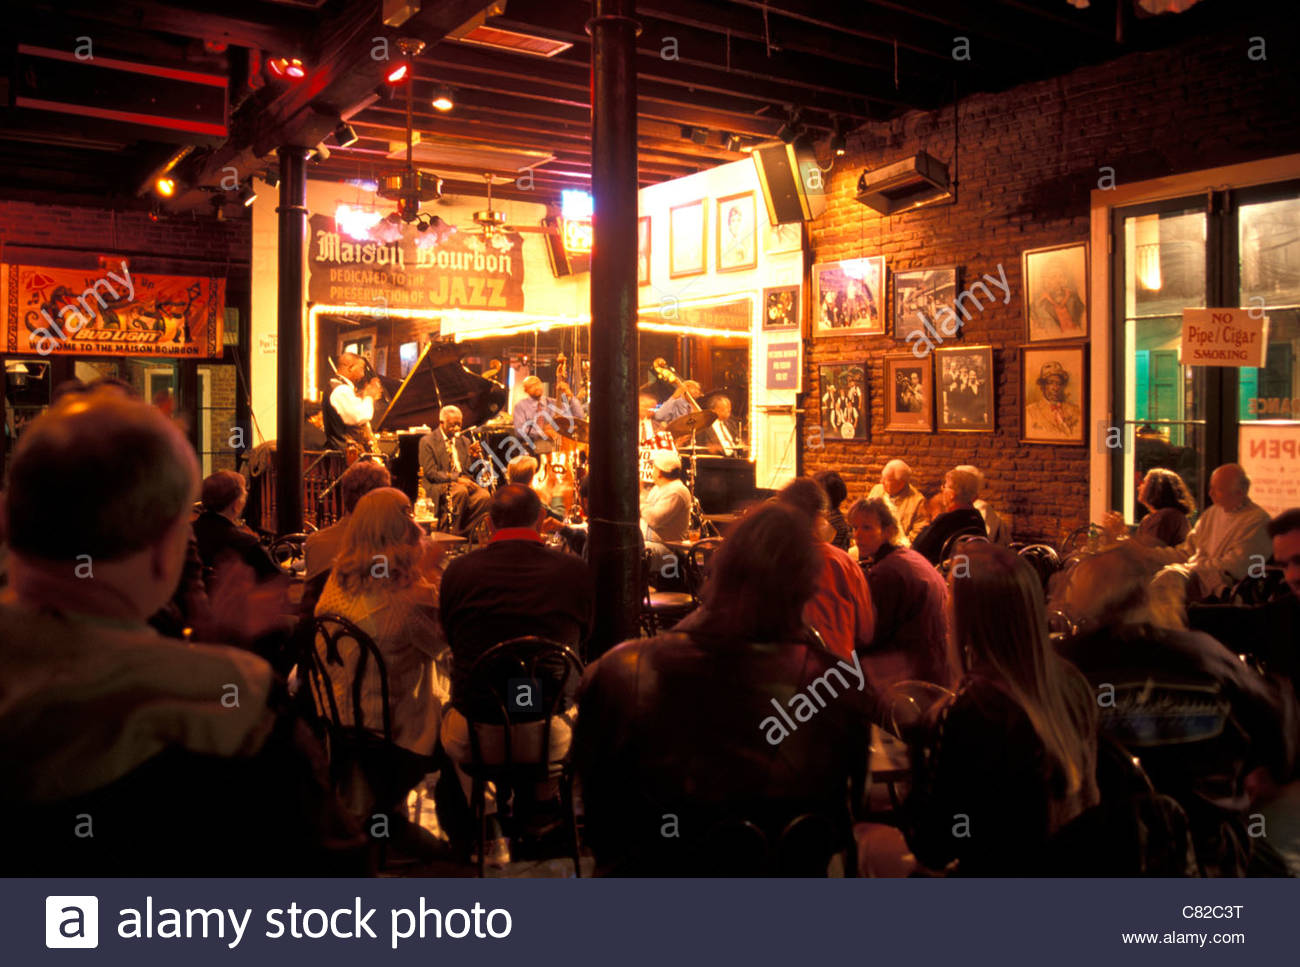 Jazz band and patrons in maison bourbon jazz club french quarter new orleans louisiana usa